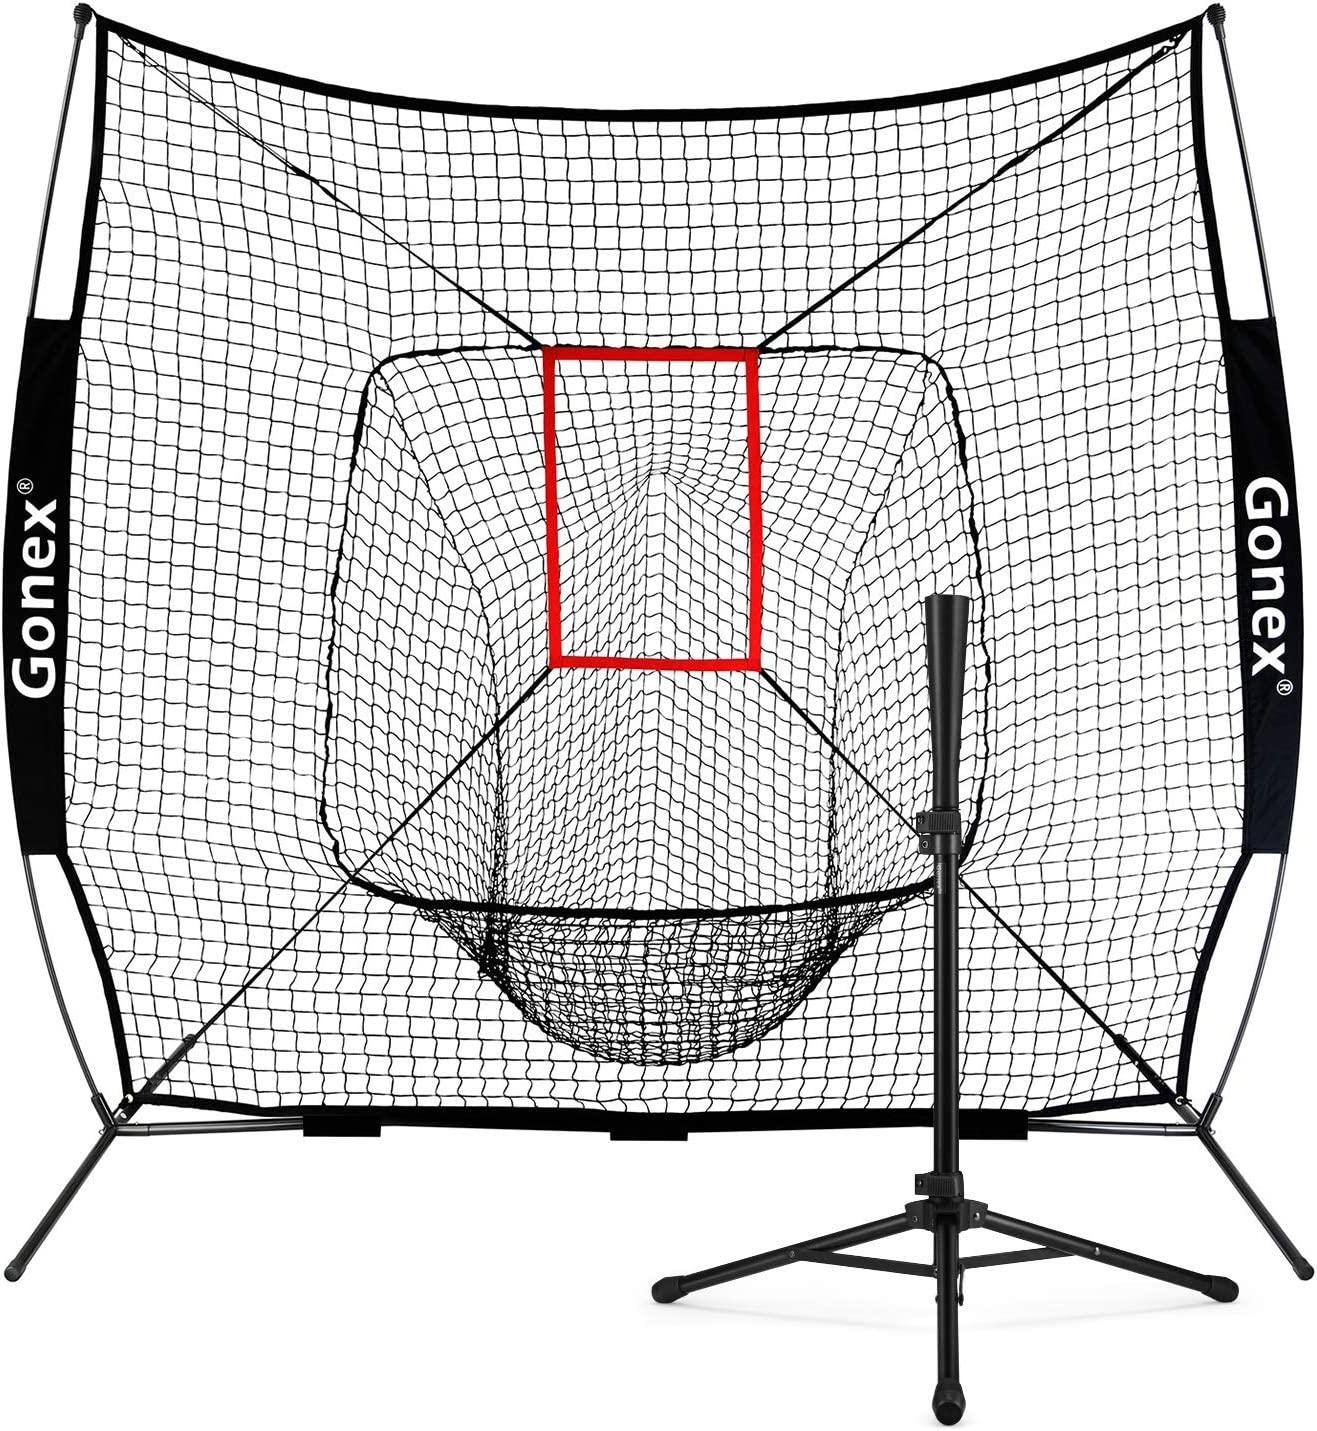 Bow Frame with Strike Zone Gonex 7 x 7 Baseball /& Softball Practice Net Set with Batting Tee for Hitting and Pitching Batting Large Mouth Black Practice Training Aid Carrying Bag